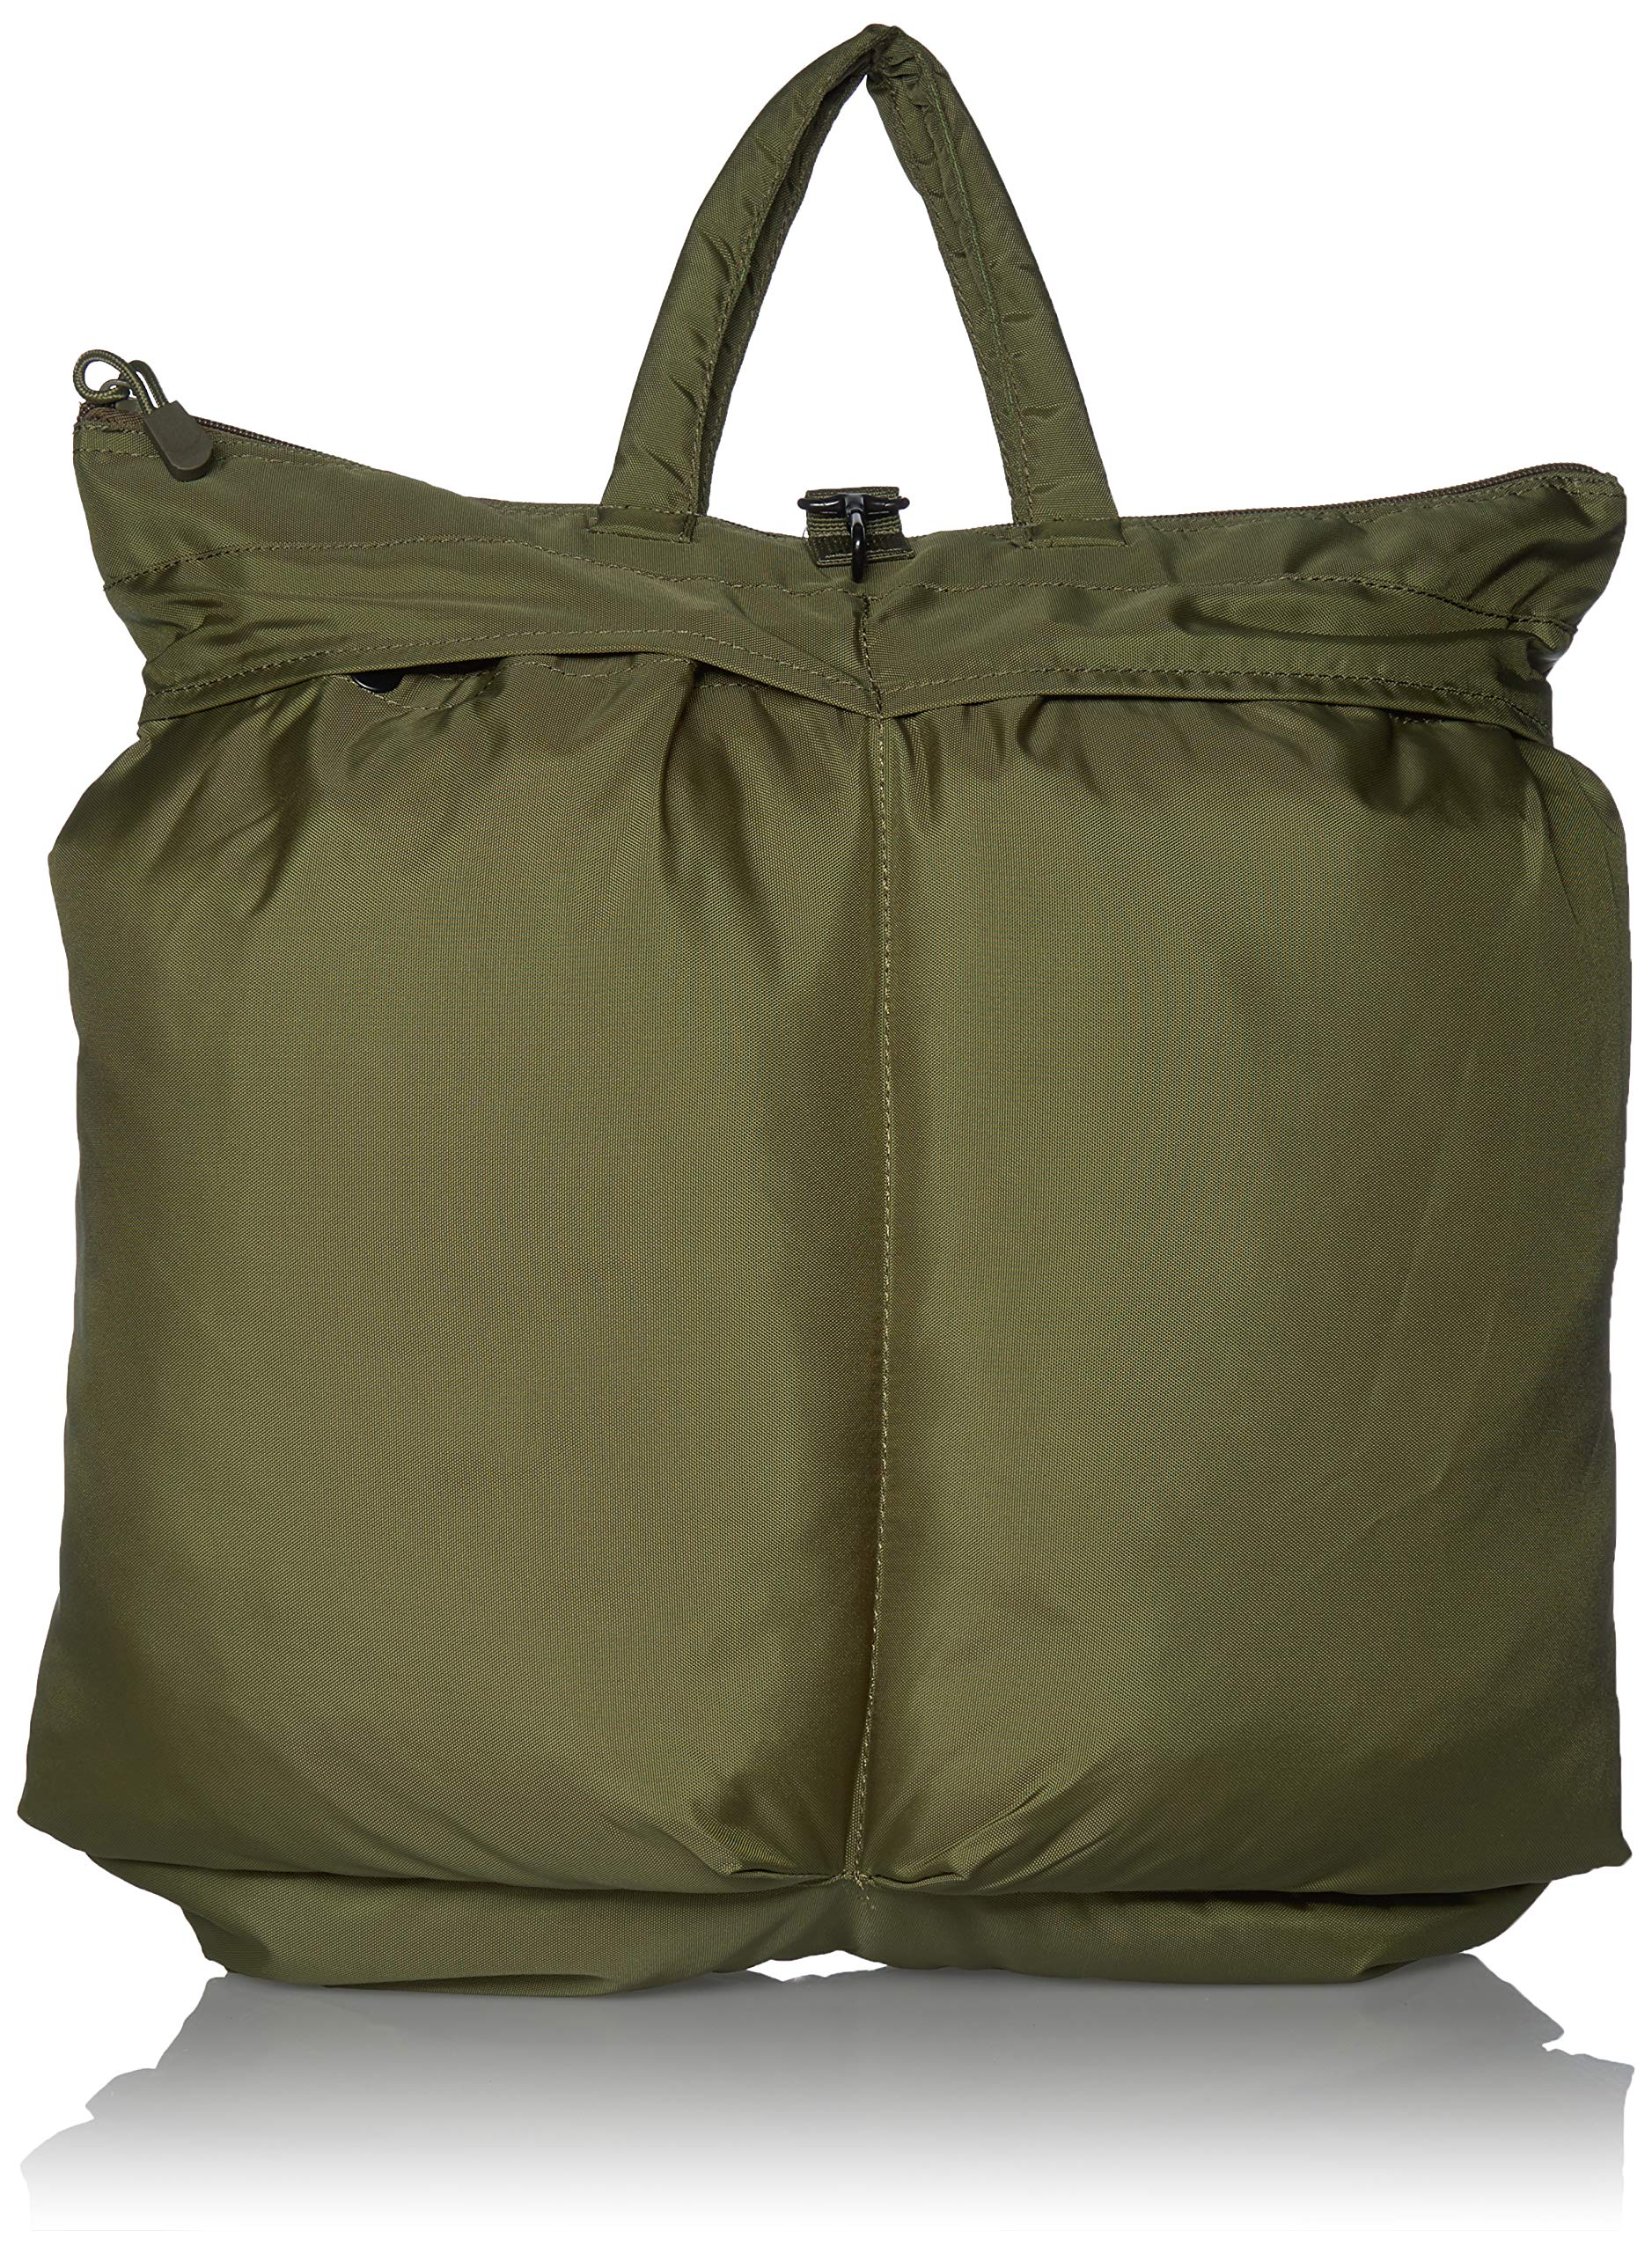 5ive Star Gear GI Spec Military Bag, Olive Drab by 5ive Star Gear